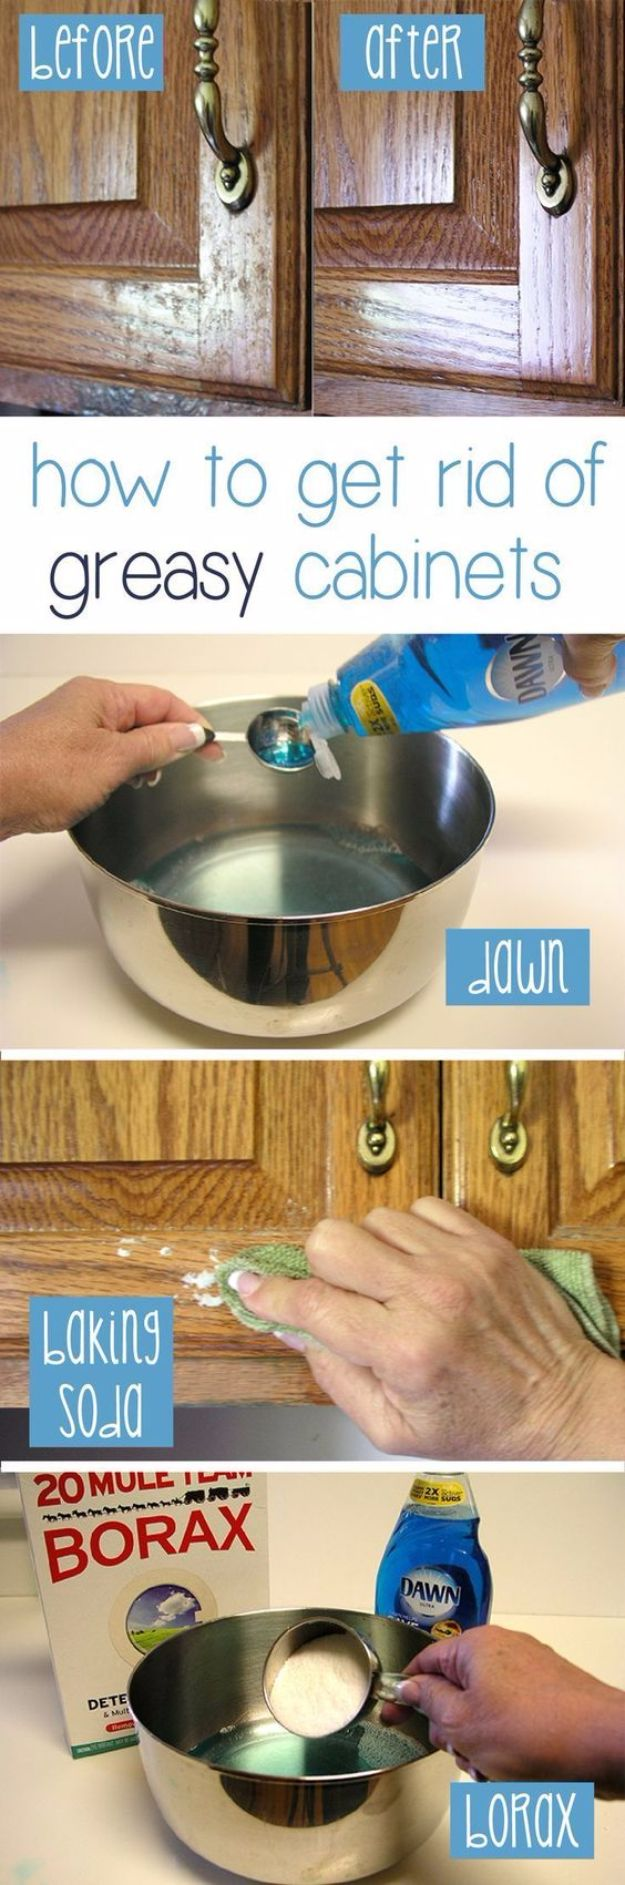 36 Best Spring Cleaning Ideas That Dont Take Hours DIY Joy